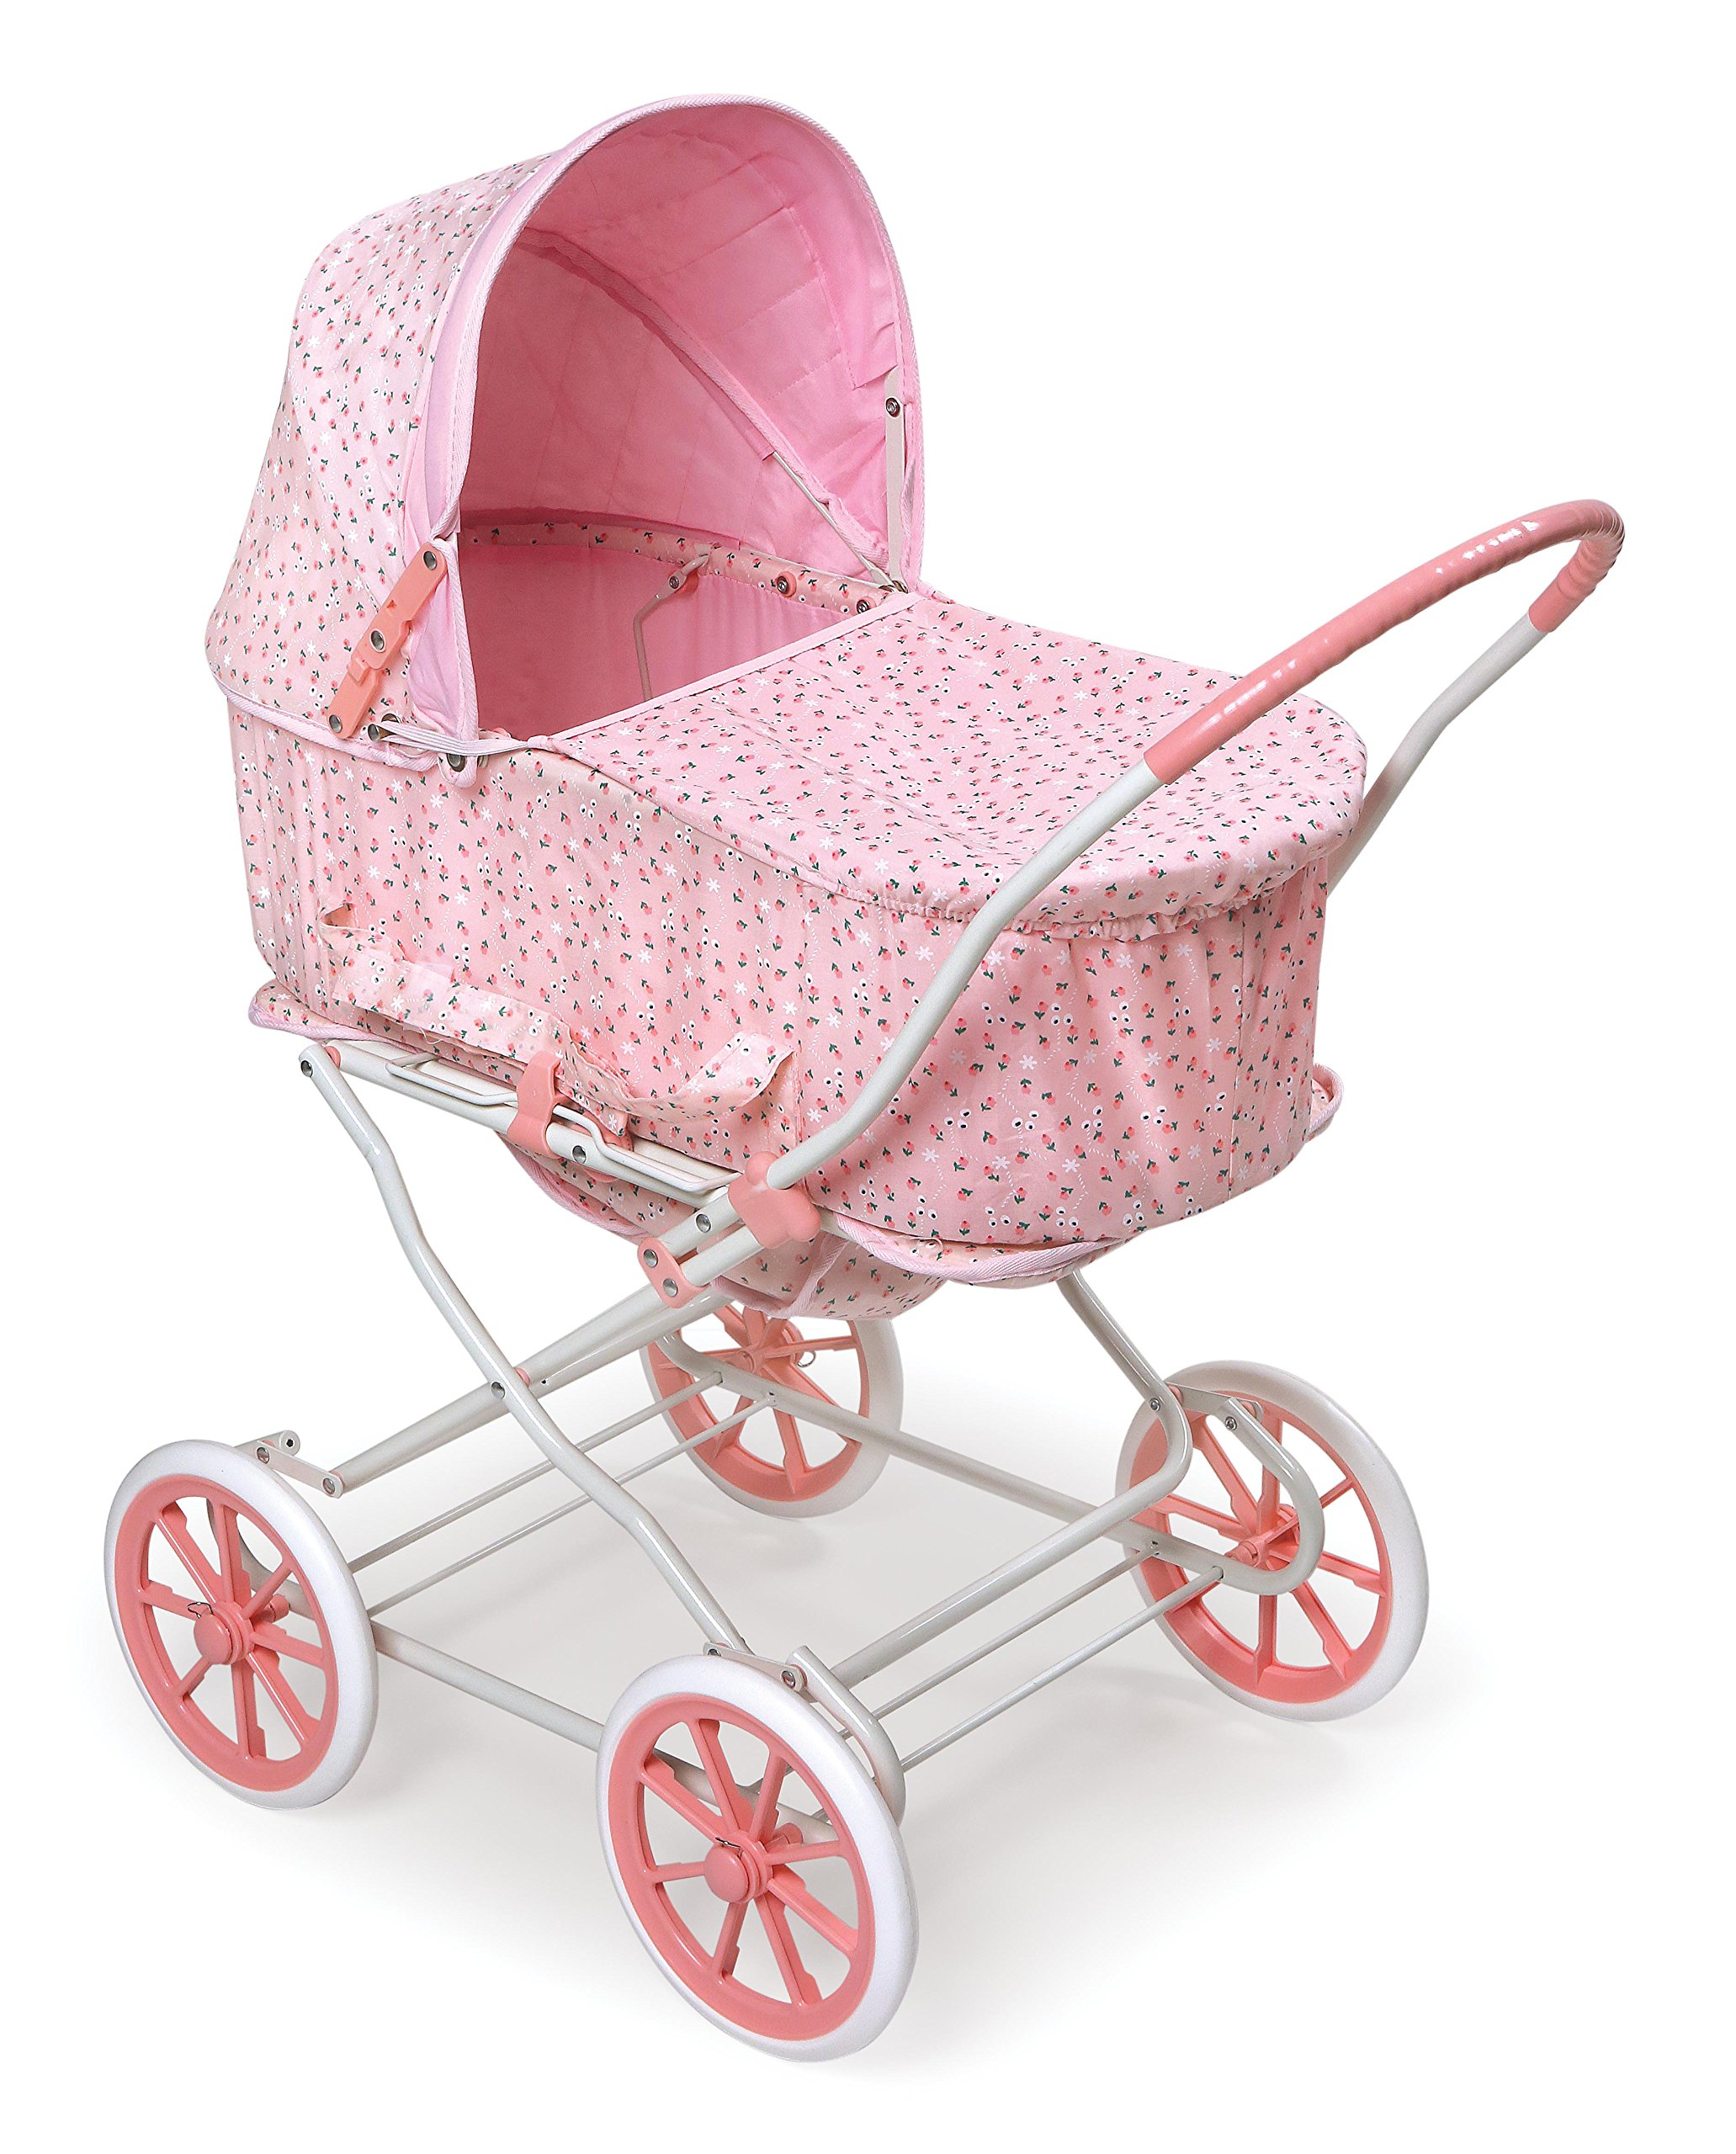 Badger Basket Pink Rosebud 3-in-1 Doll Pram, Carrier, and Stroller (fits American Girl Dolls) by Badger Basket